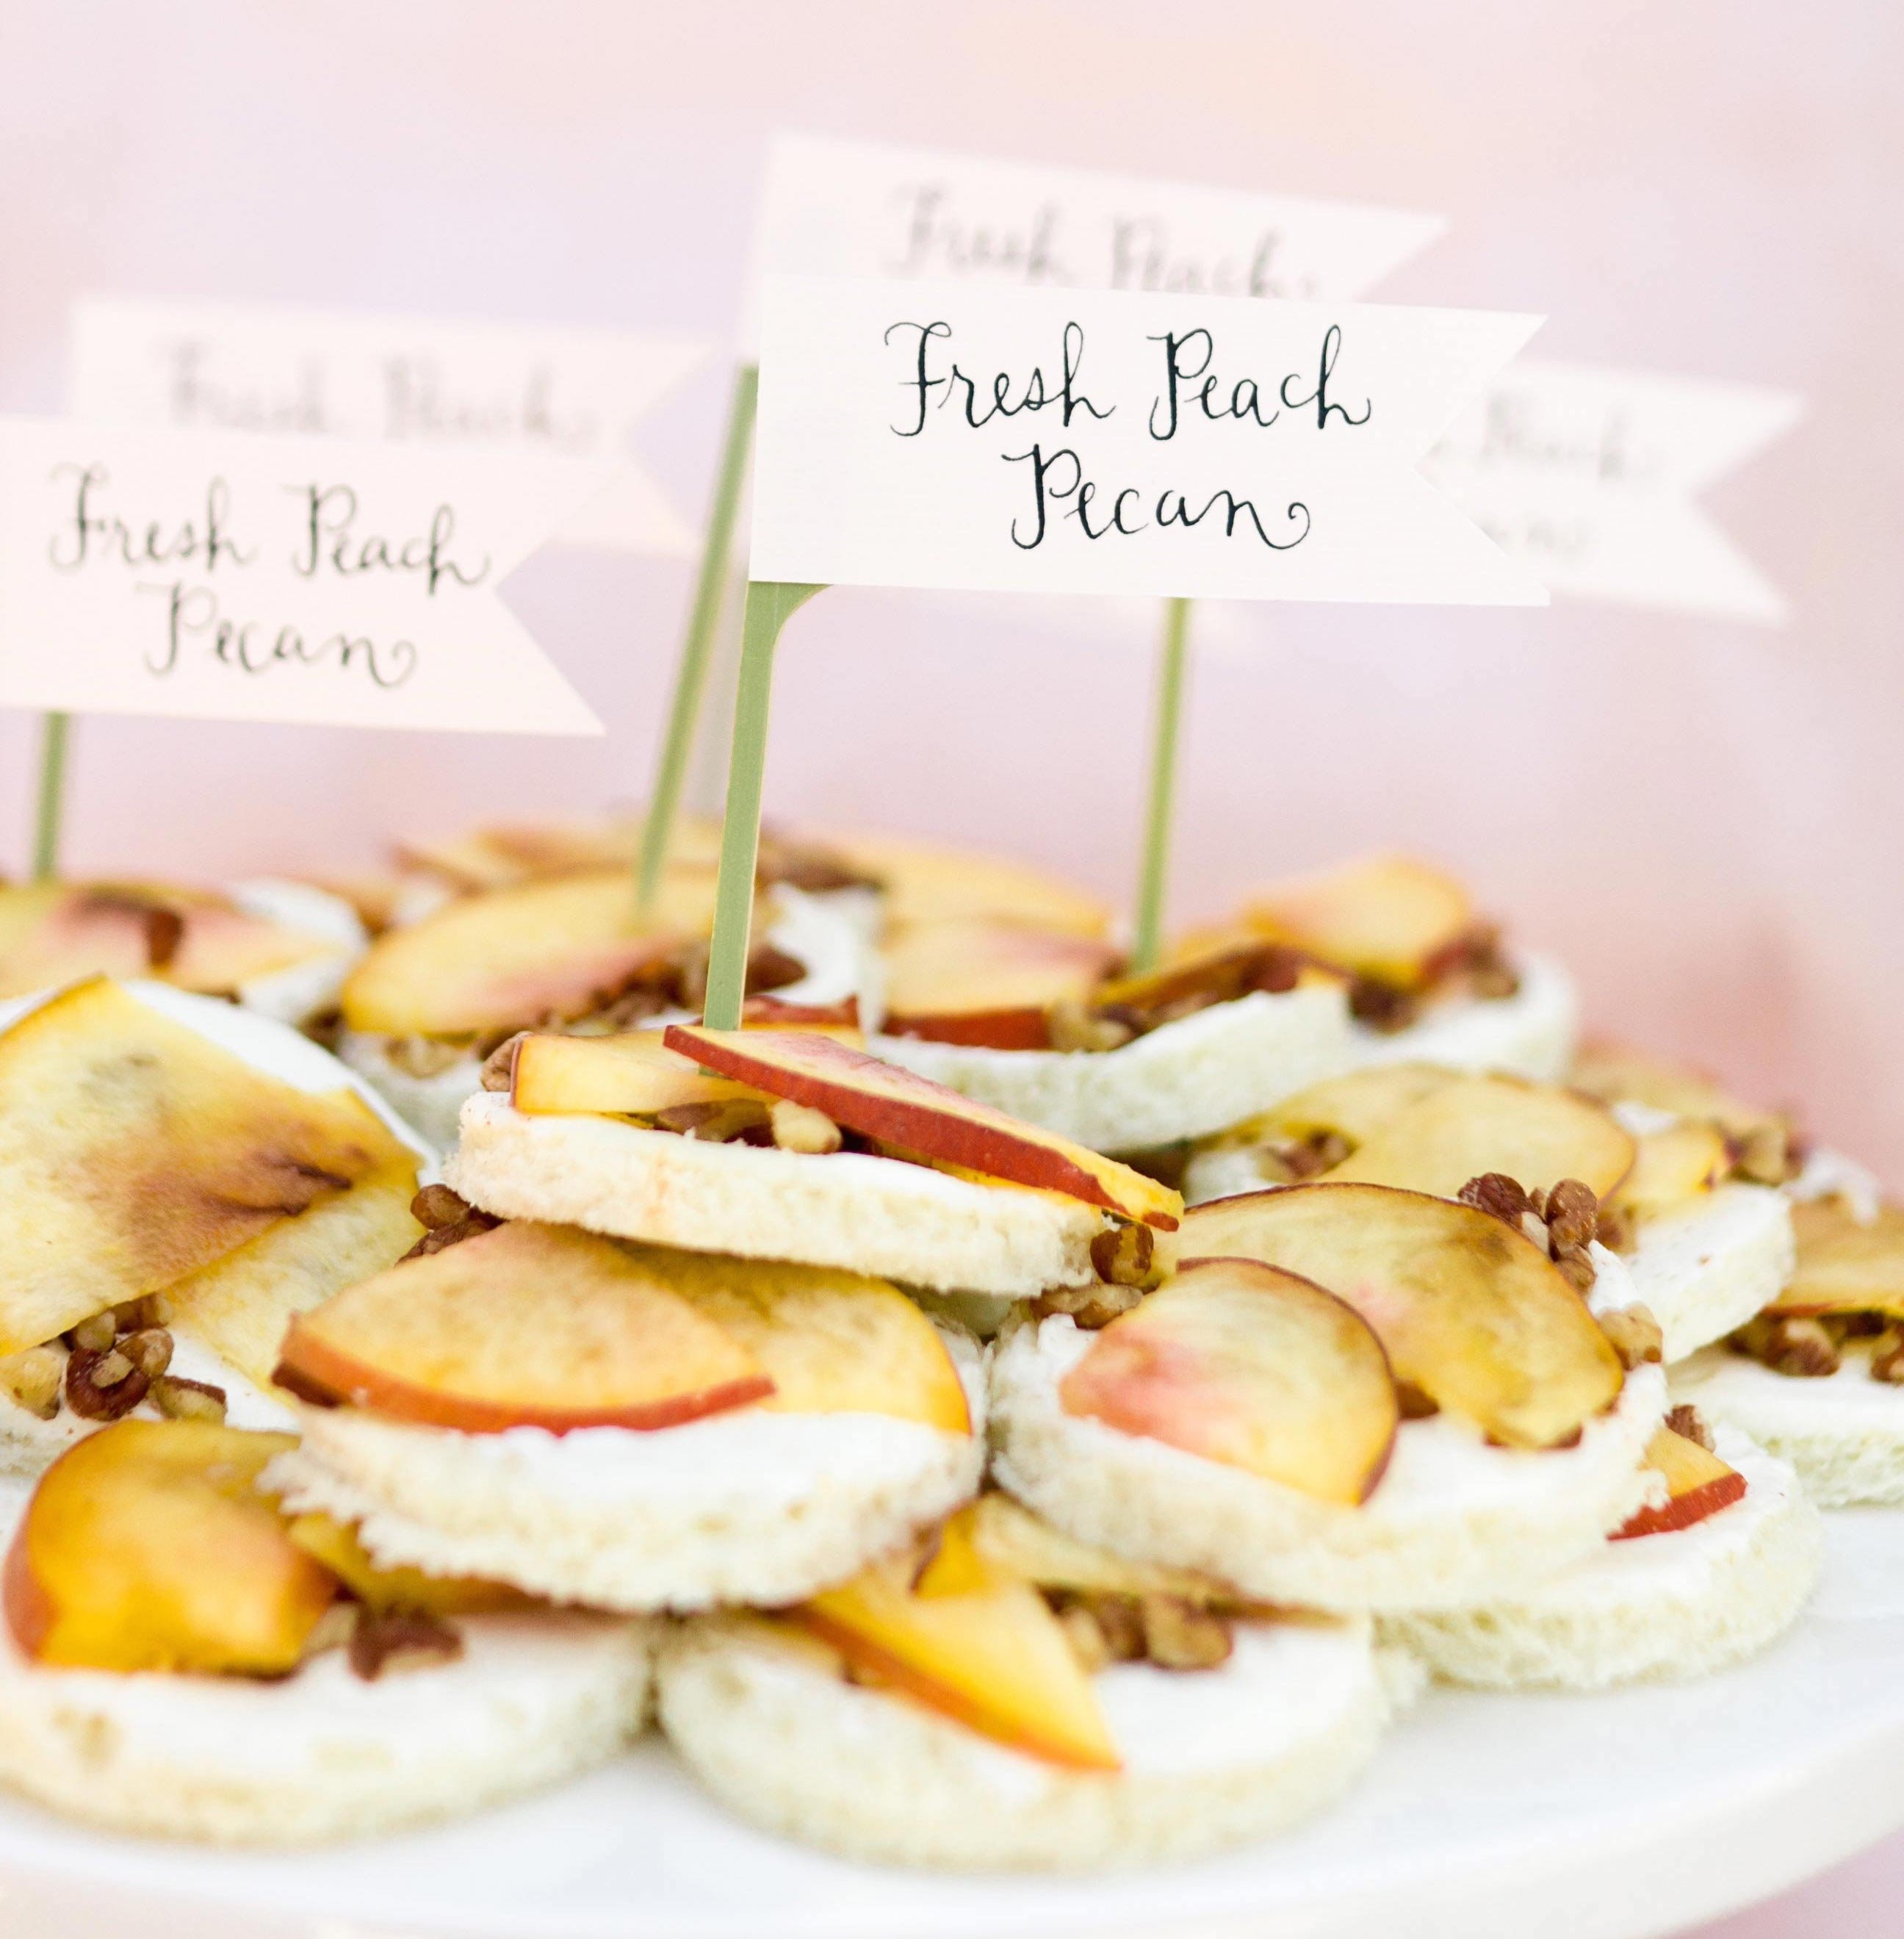 cocktail hour ideas: wedding appetizers guests will love - inside